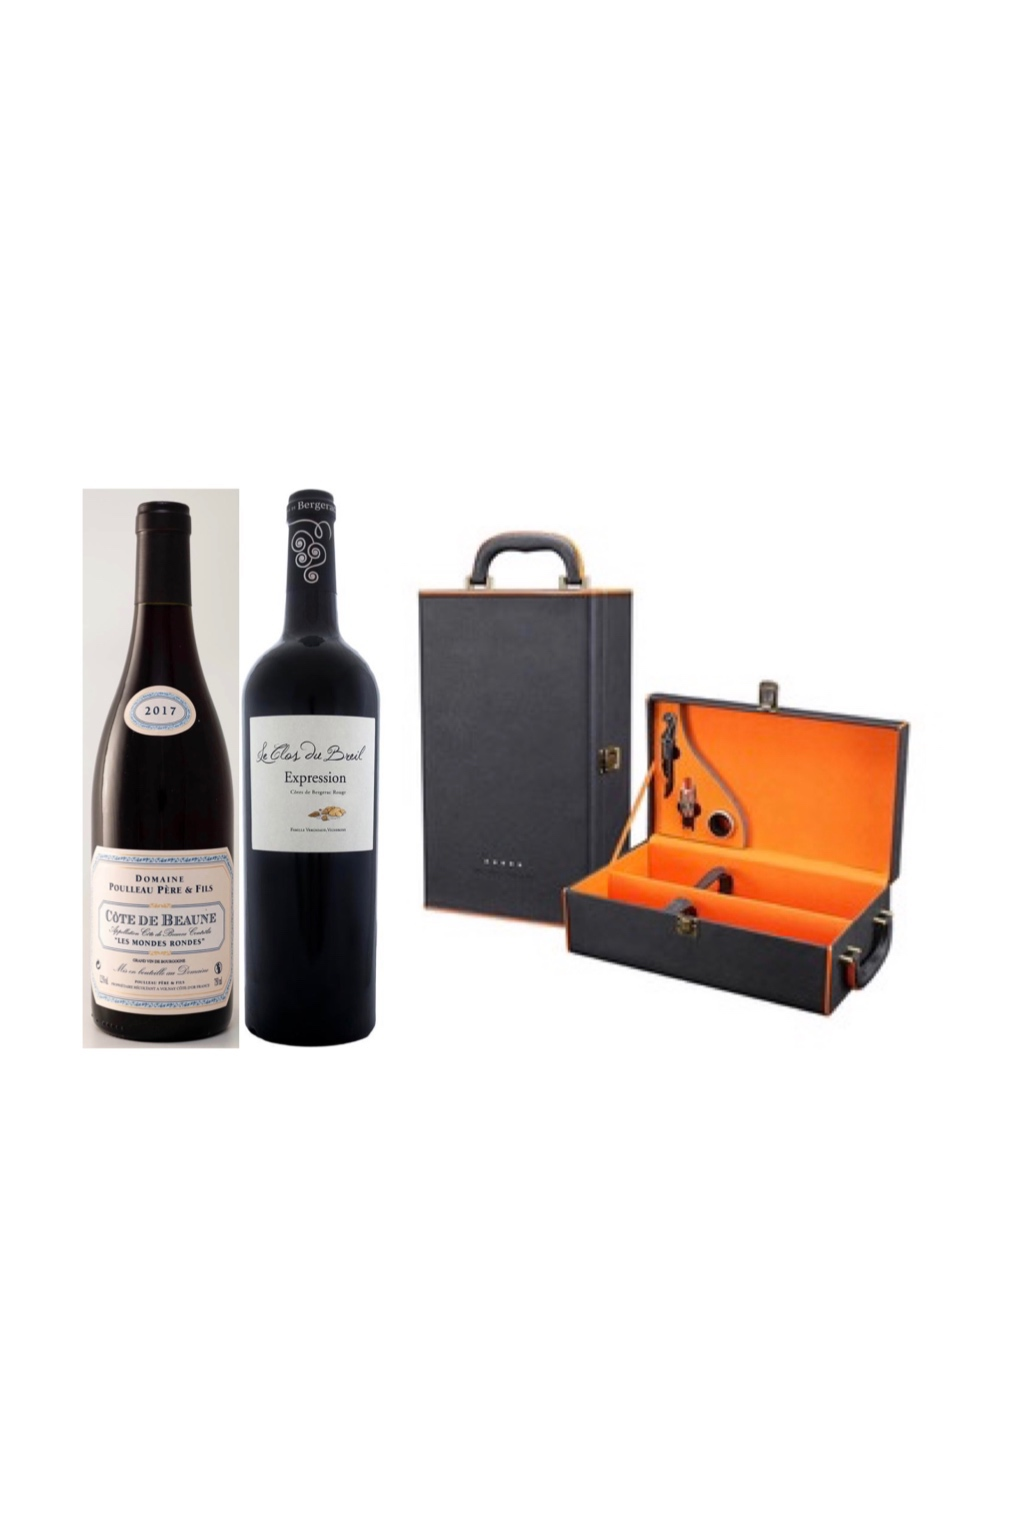 1 Month French Discovery Wine Gift Subscription